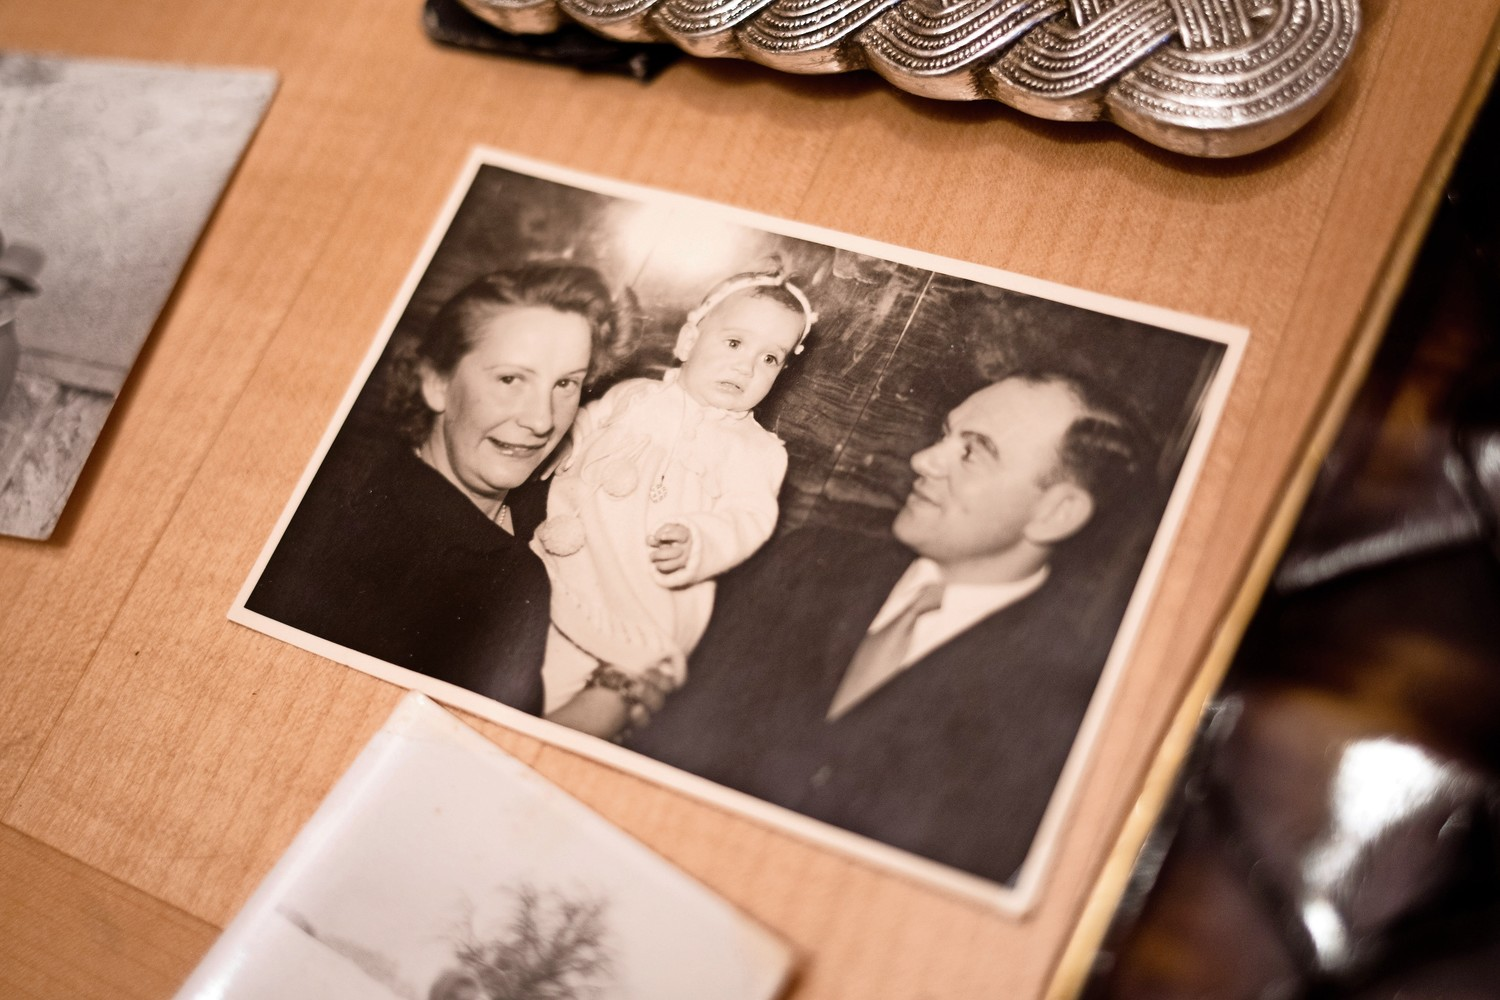 A 1950 photograph shows a newborn Helene Kamioner with her mother and father, Chava and Yechiel. Helene Kamioner remembers her parents fondly, and recently learned that the Yad Vashem, Israel's Holocaust memorial, found her father's dog tag with his prisoner number on it. He spent six years in a labor camp during World War II.